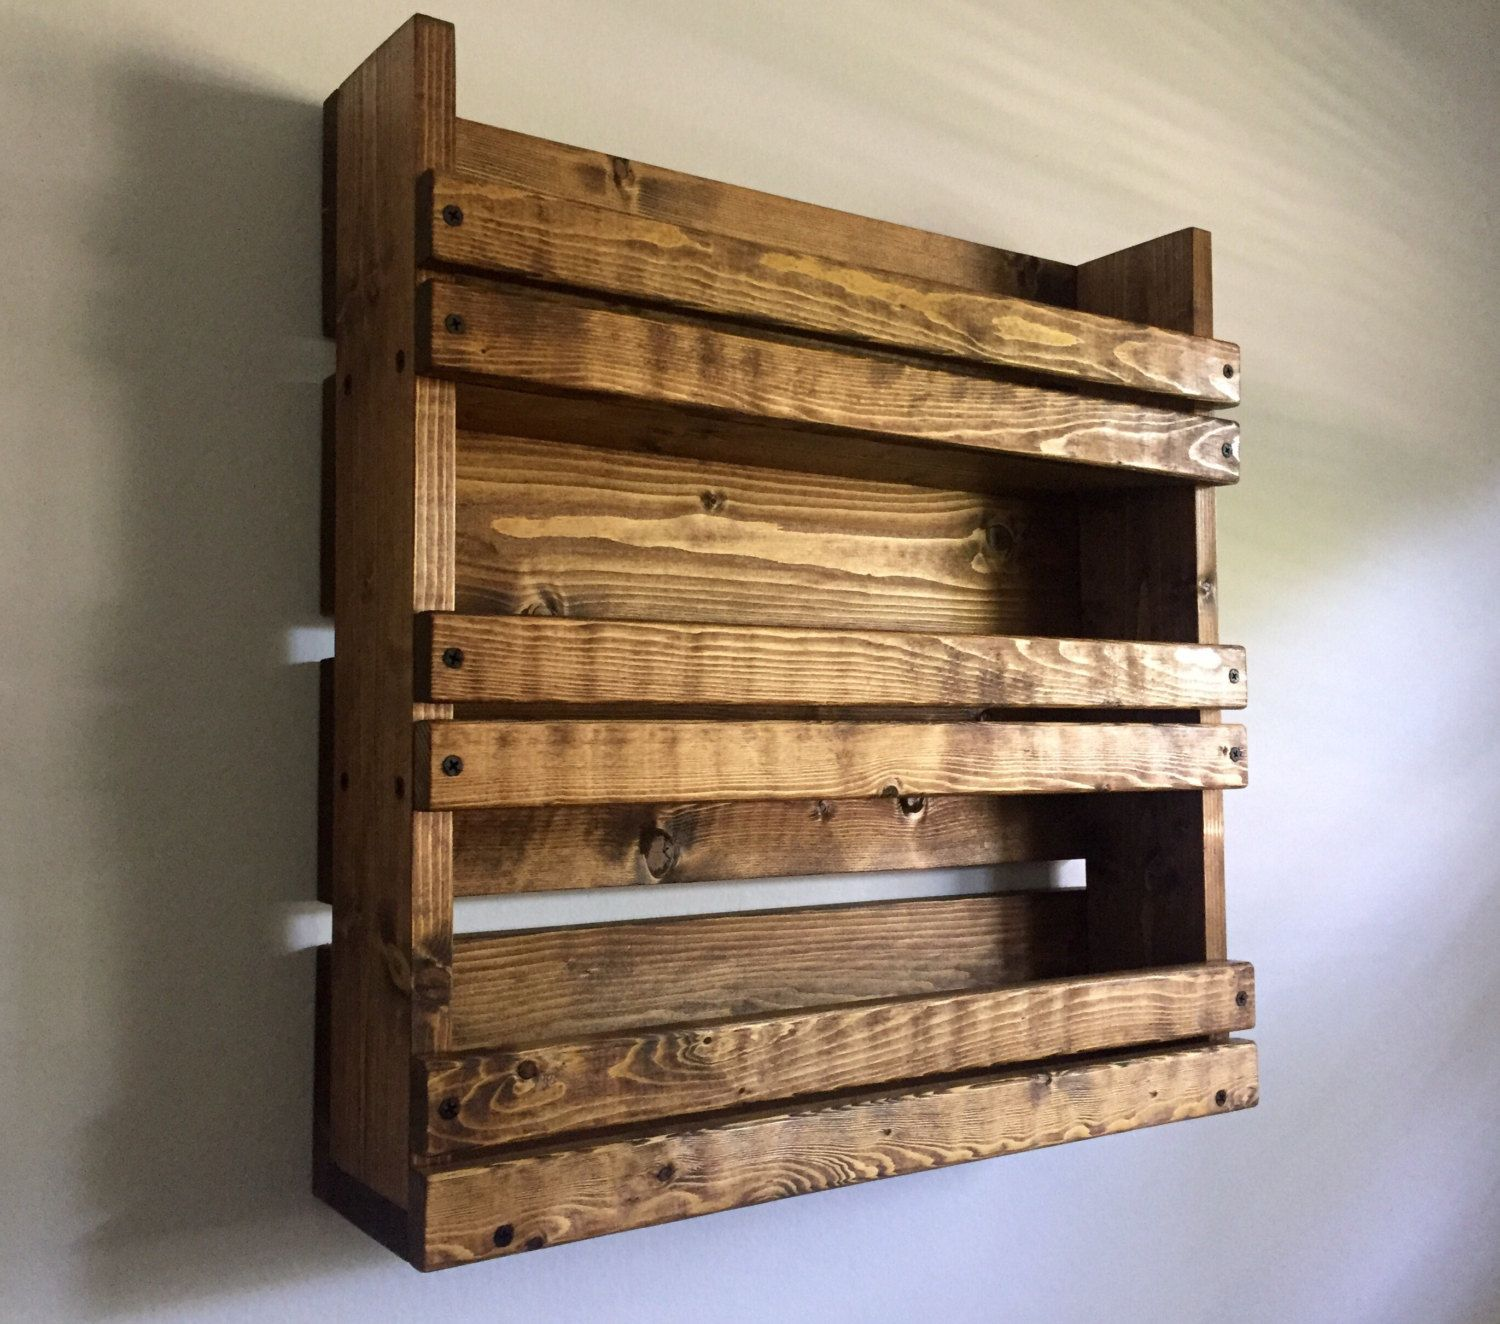 Wood Spice Rack For Wall Magnificent Spice Rack Rustic Spice Rack With 3 Shelves Kitchen Organizer Inspiration